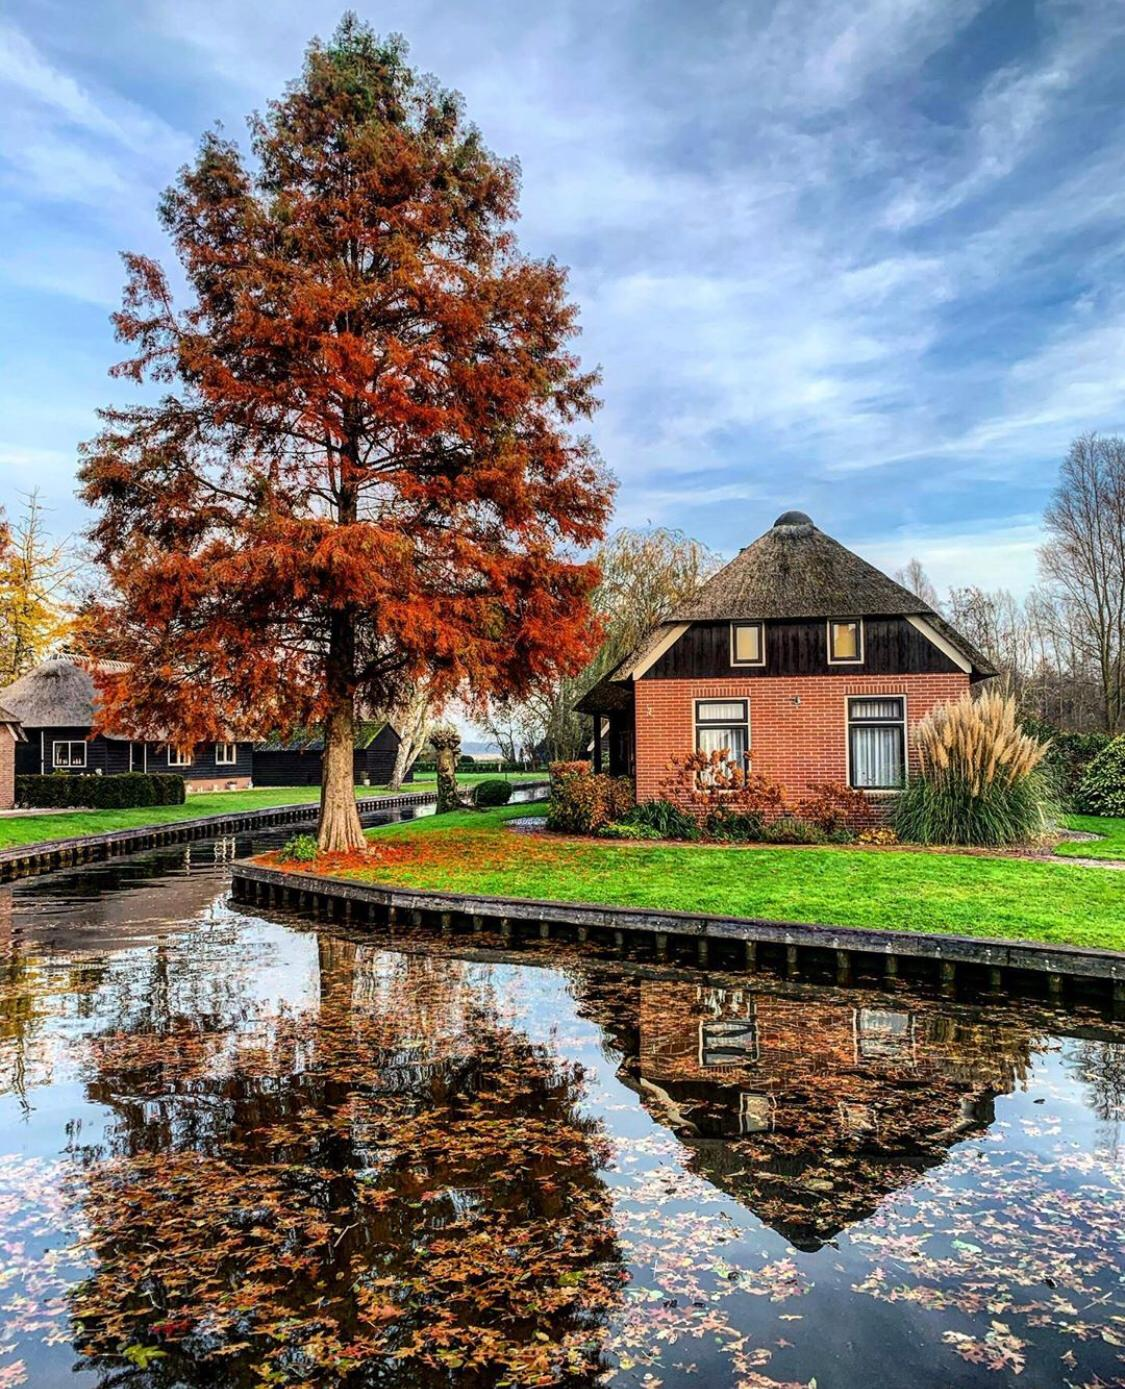 About Giethoorn